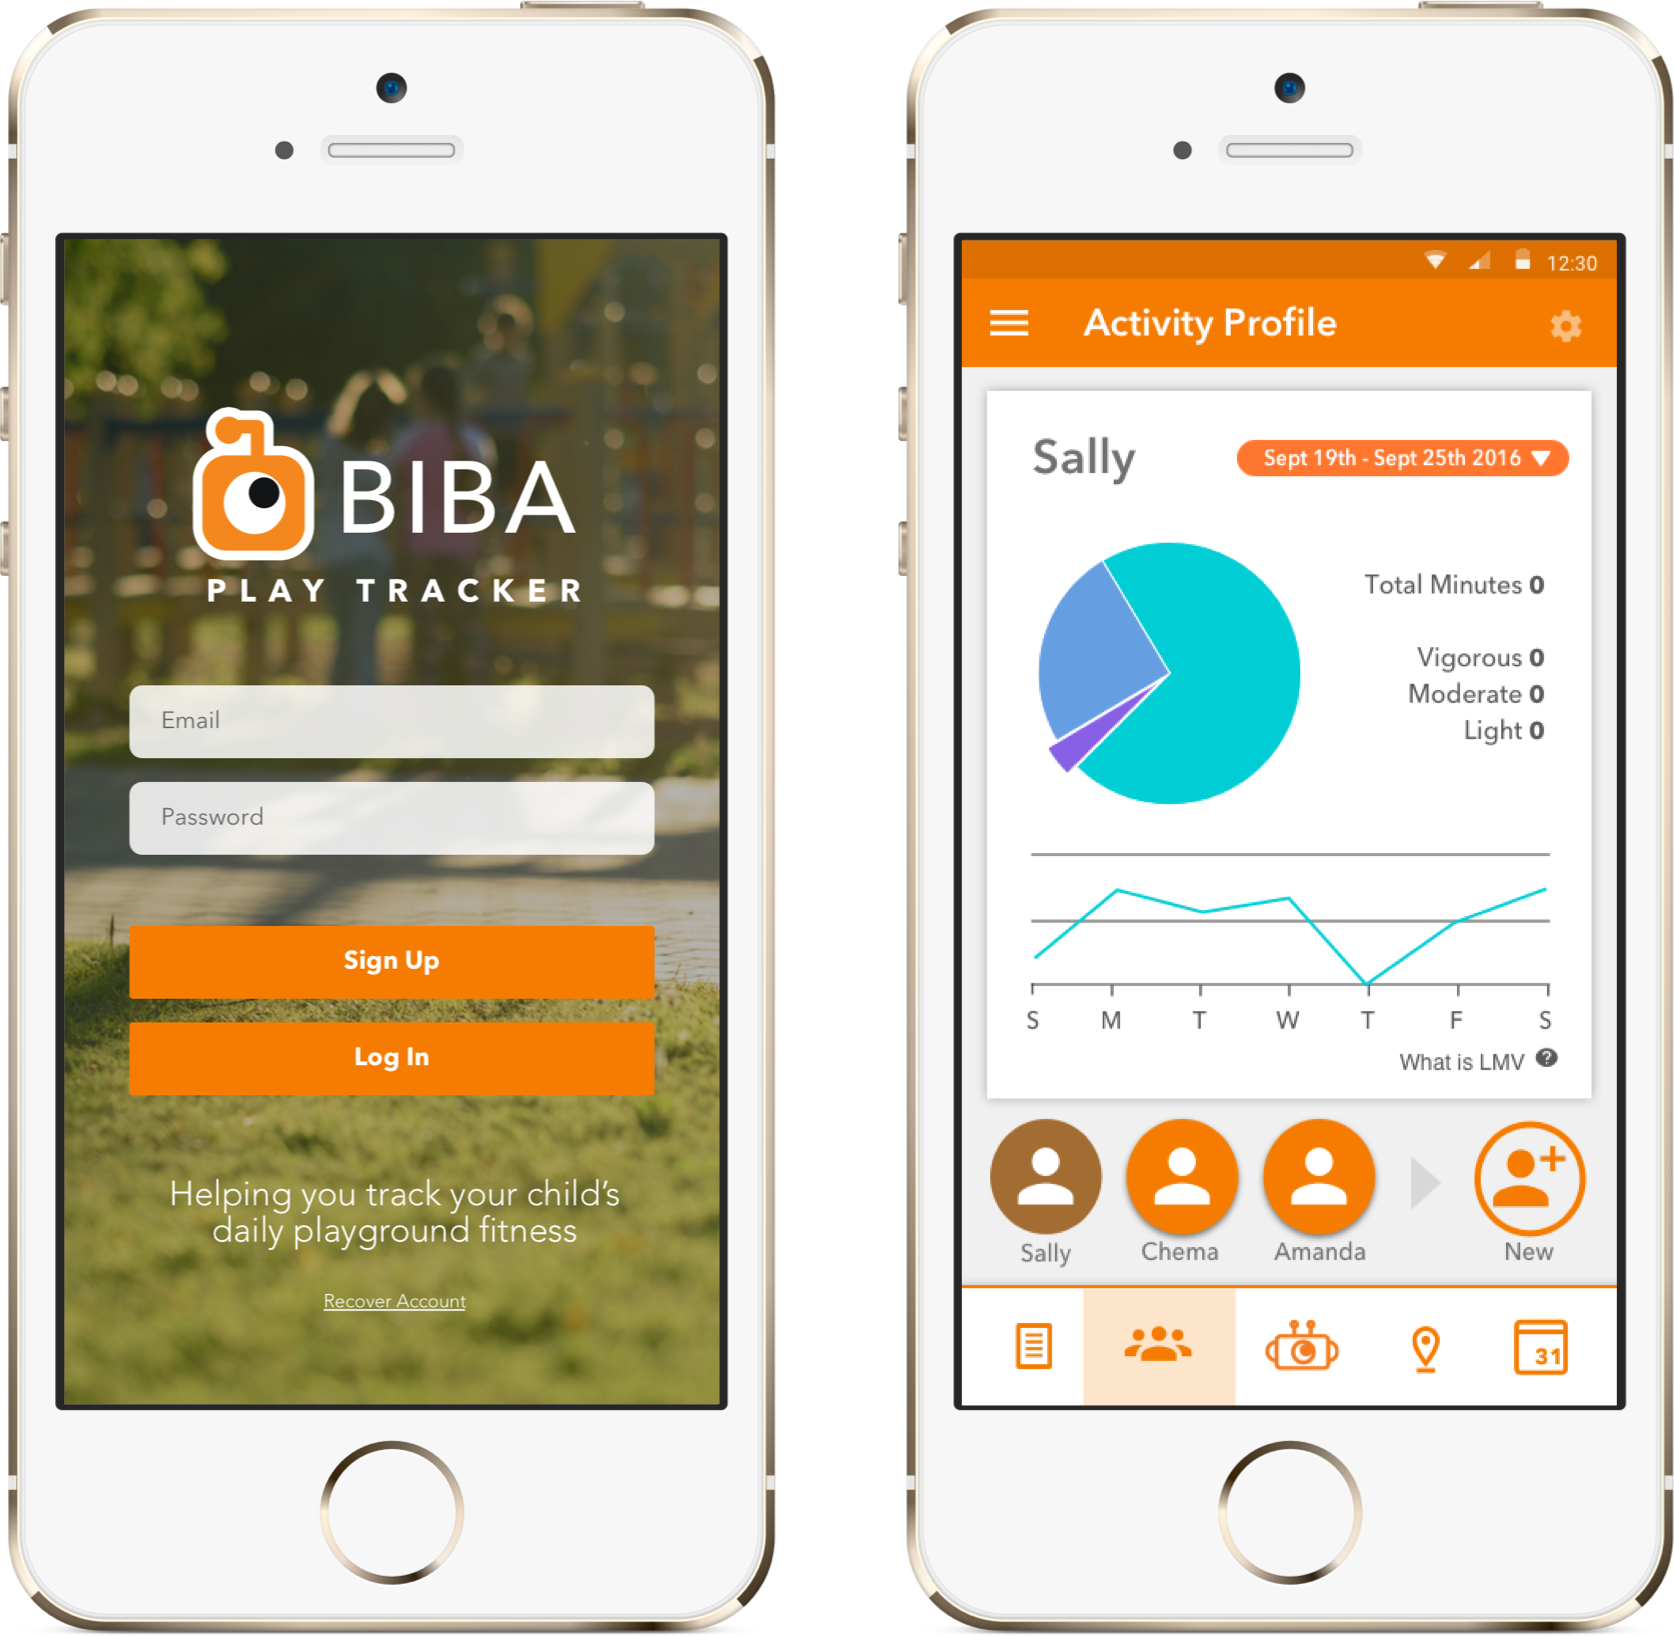 Copy of Biba PlayTracker: Family Playground Finder and Activity Tracker